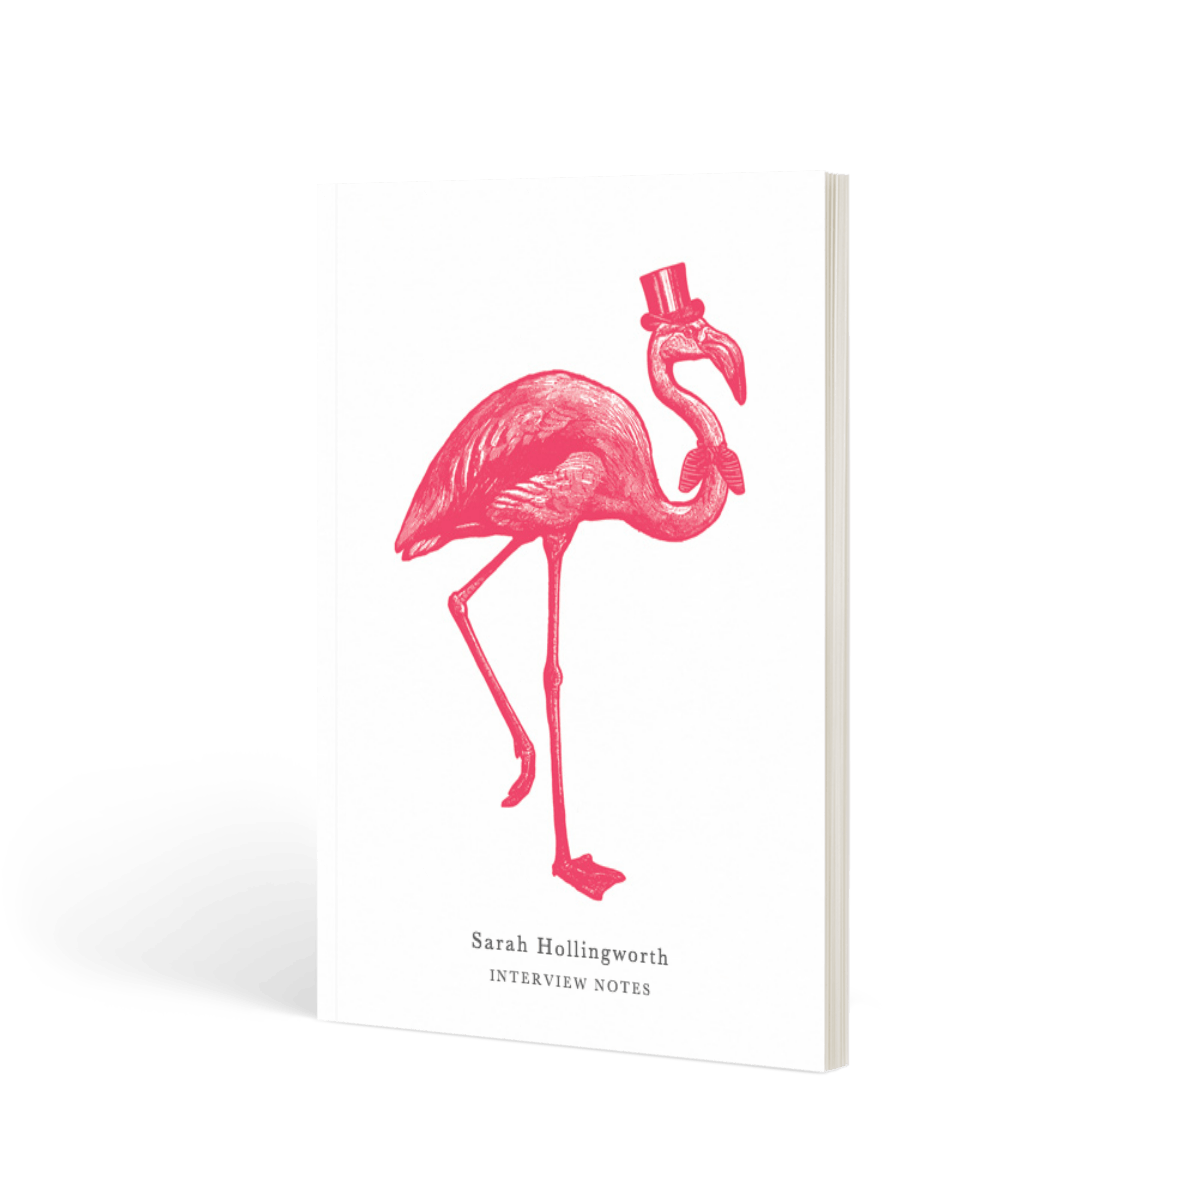 Https%3a%2f%2fwww.papier.com%2fproduct image%2f13362%2f6%2fsophisticated flamingo 3416 front 1534512695.png?ixlib=rb 1.1